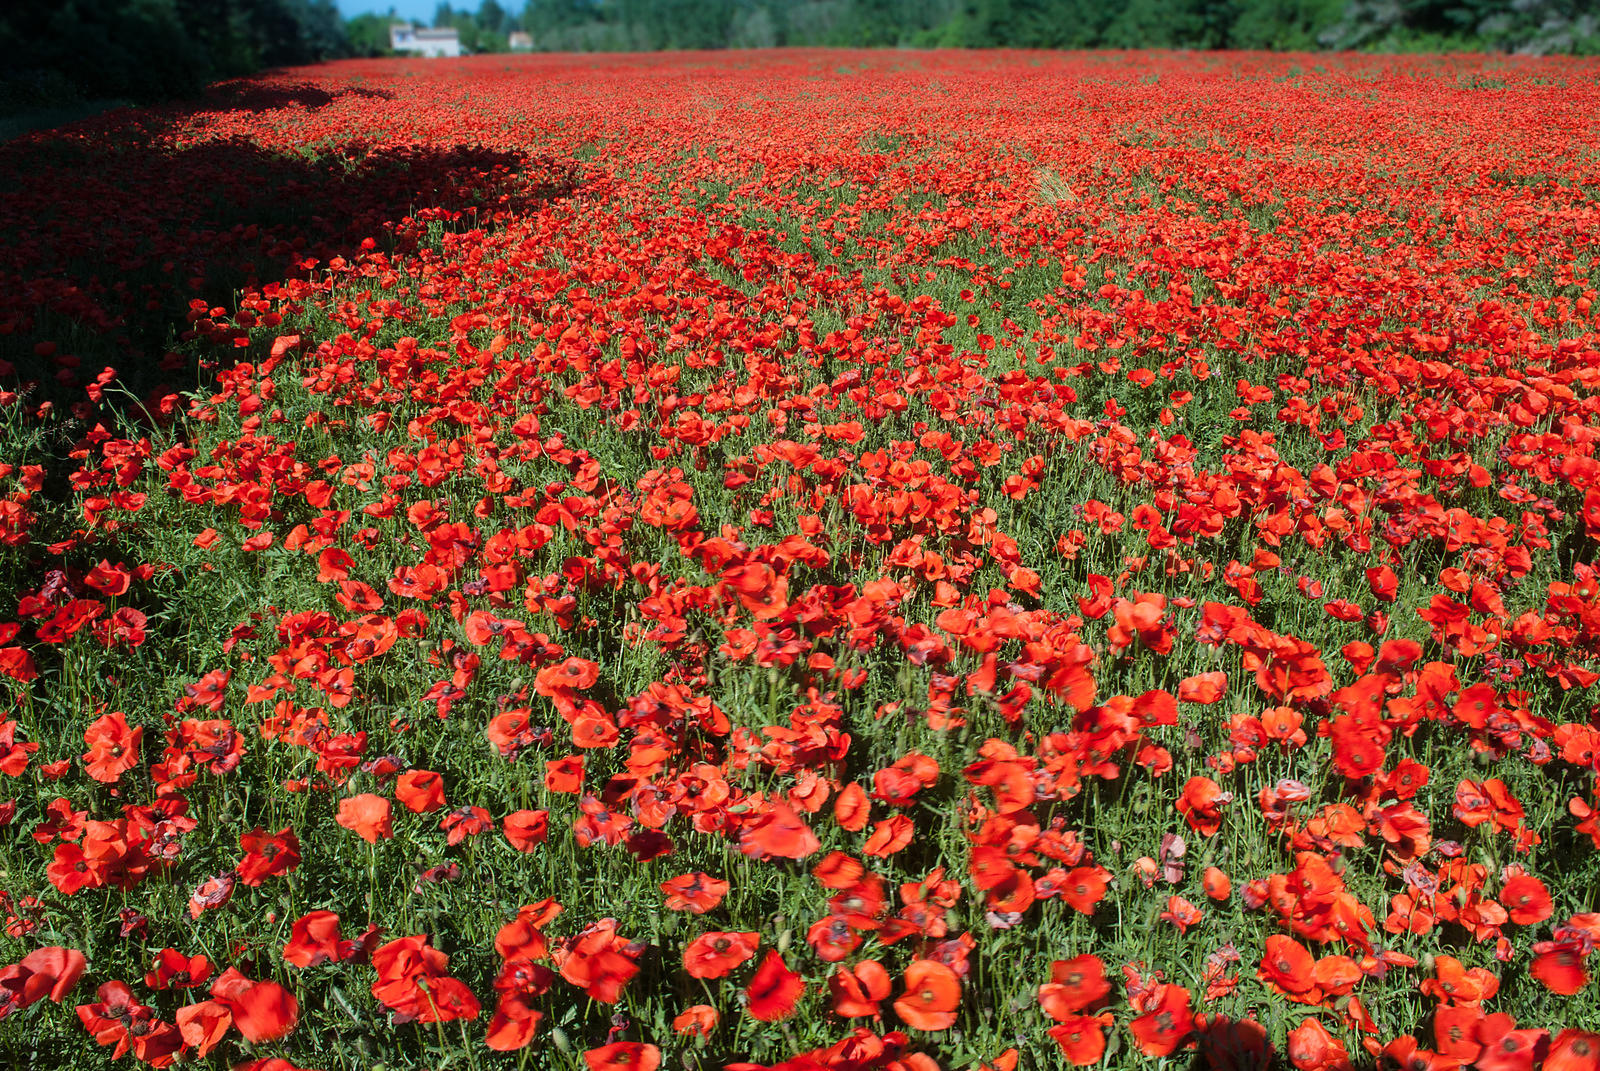 Coquelicots, Vaucluse, France